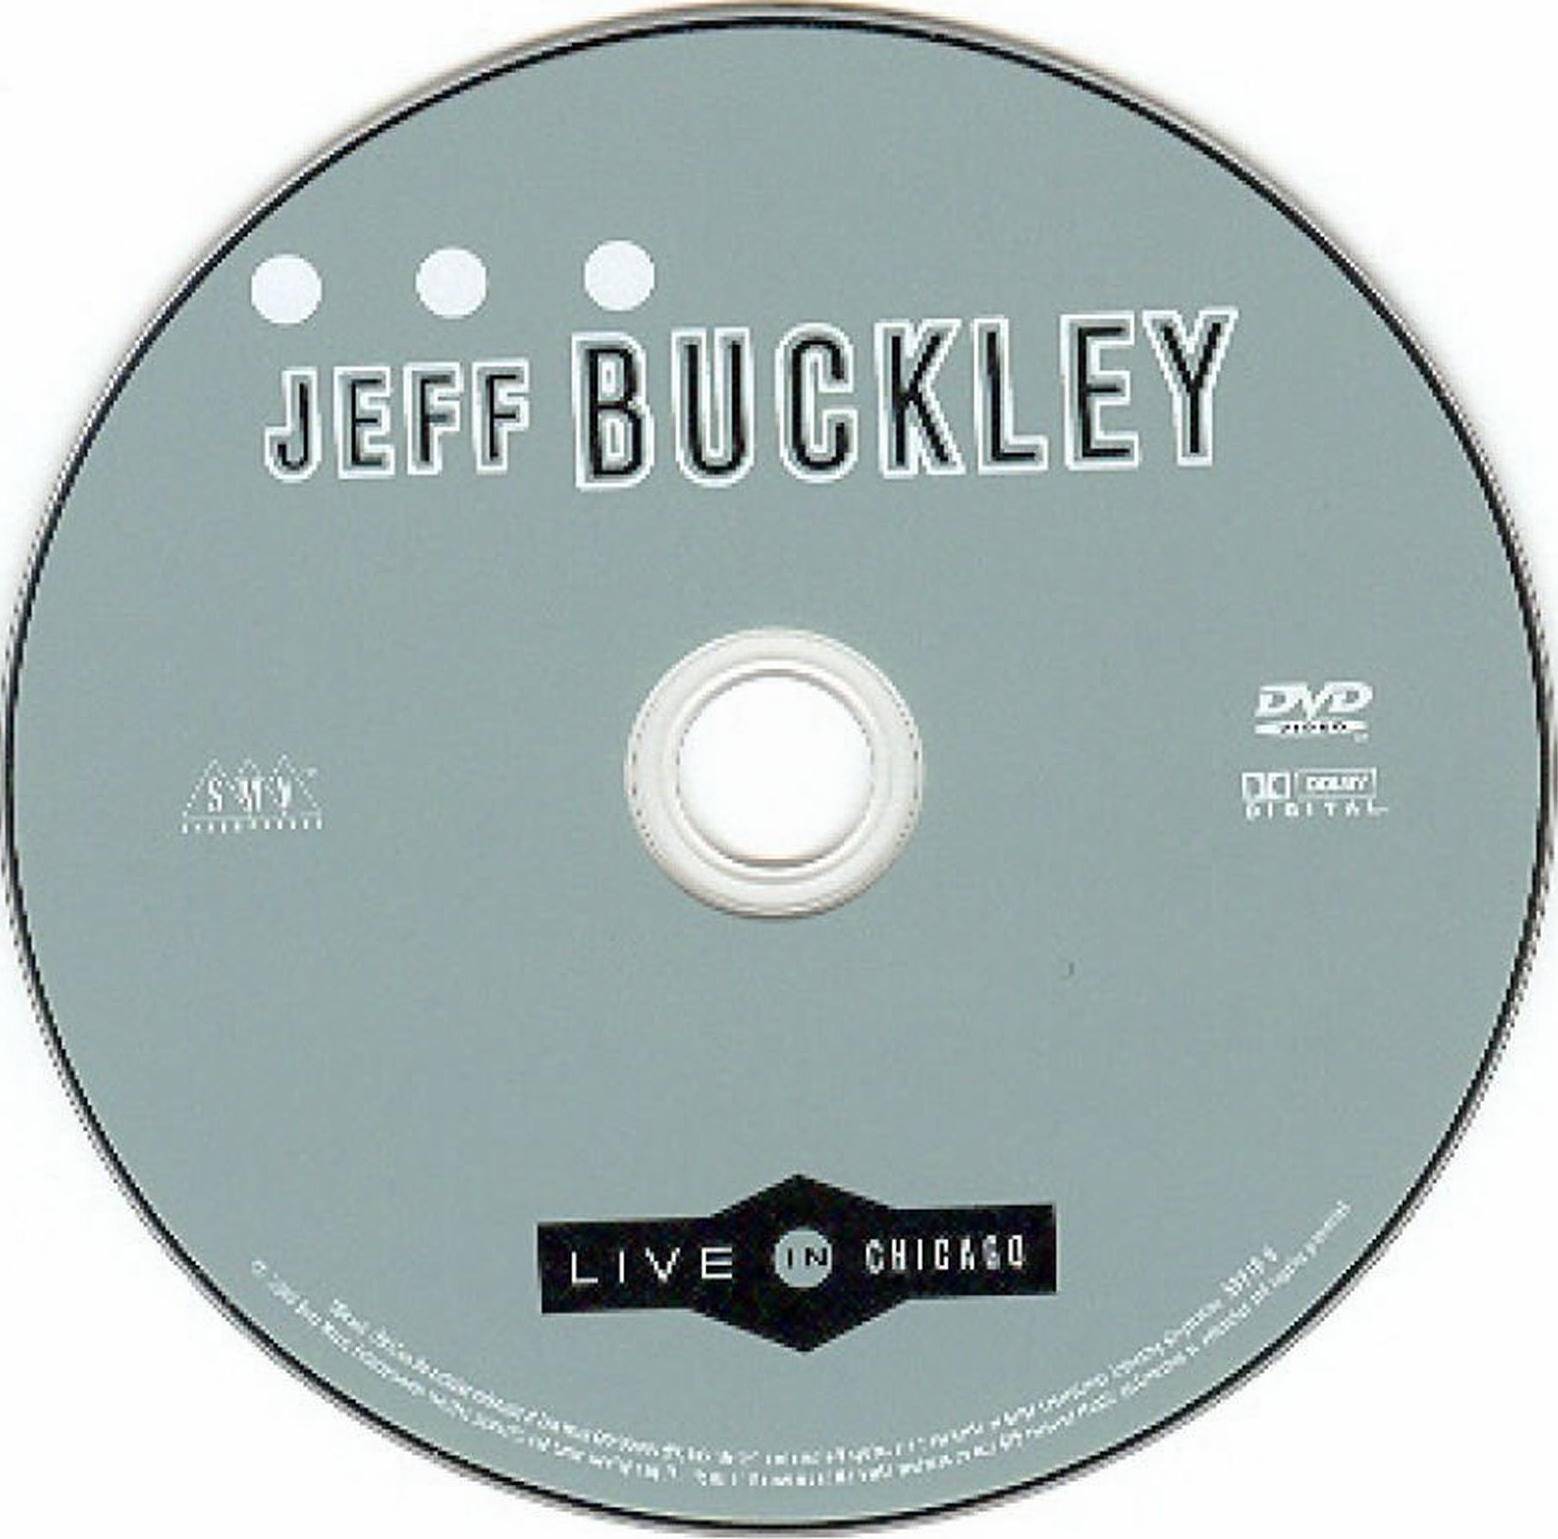 Jeff Buckley - Live In Chicago - DVD (Eng)